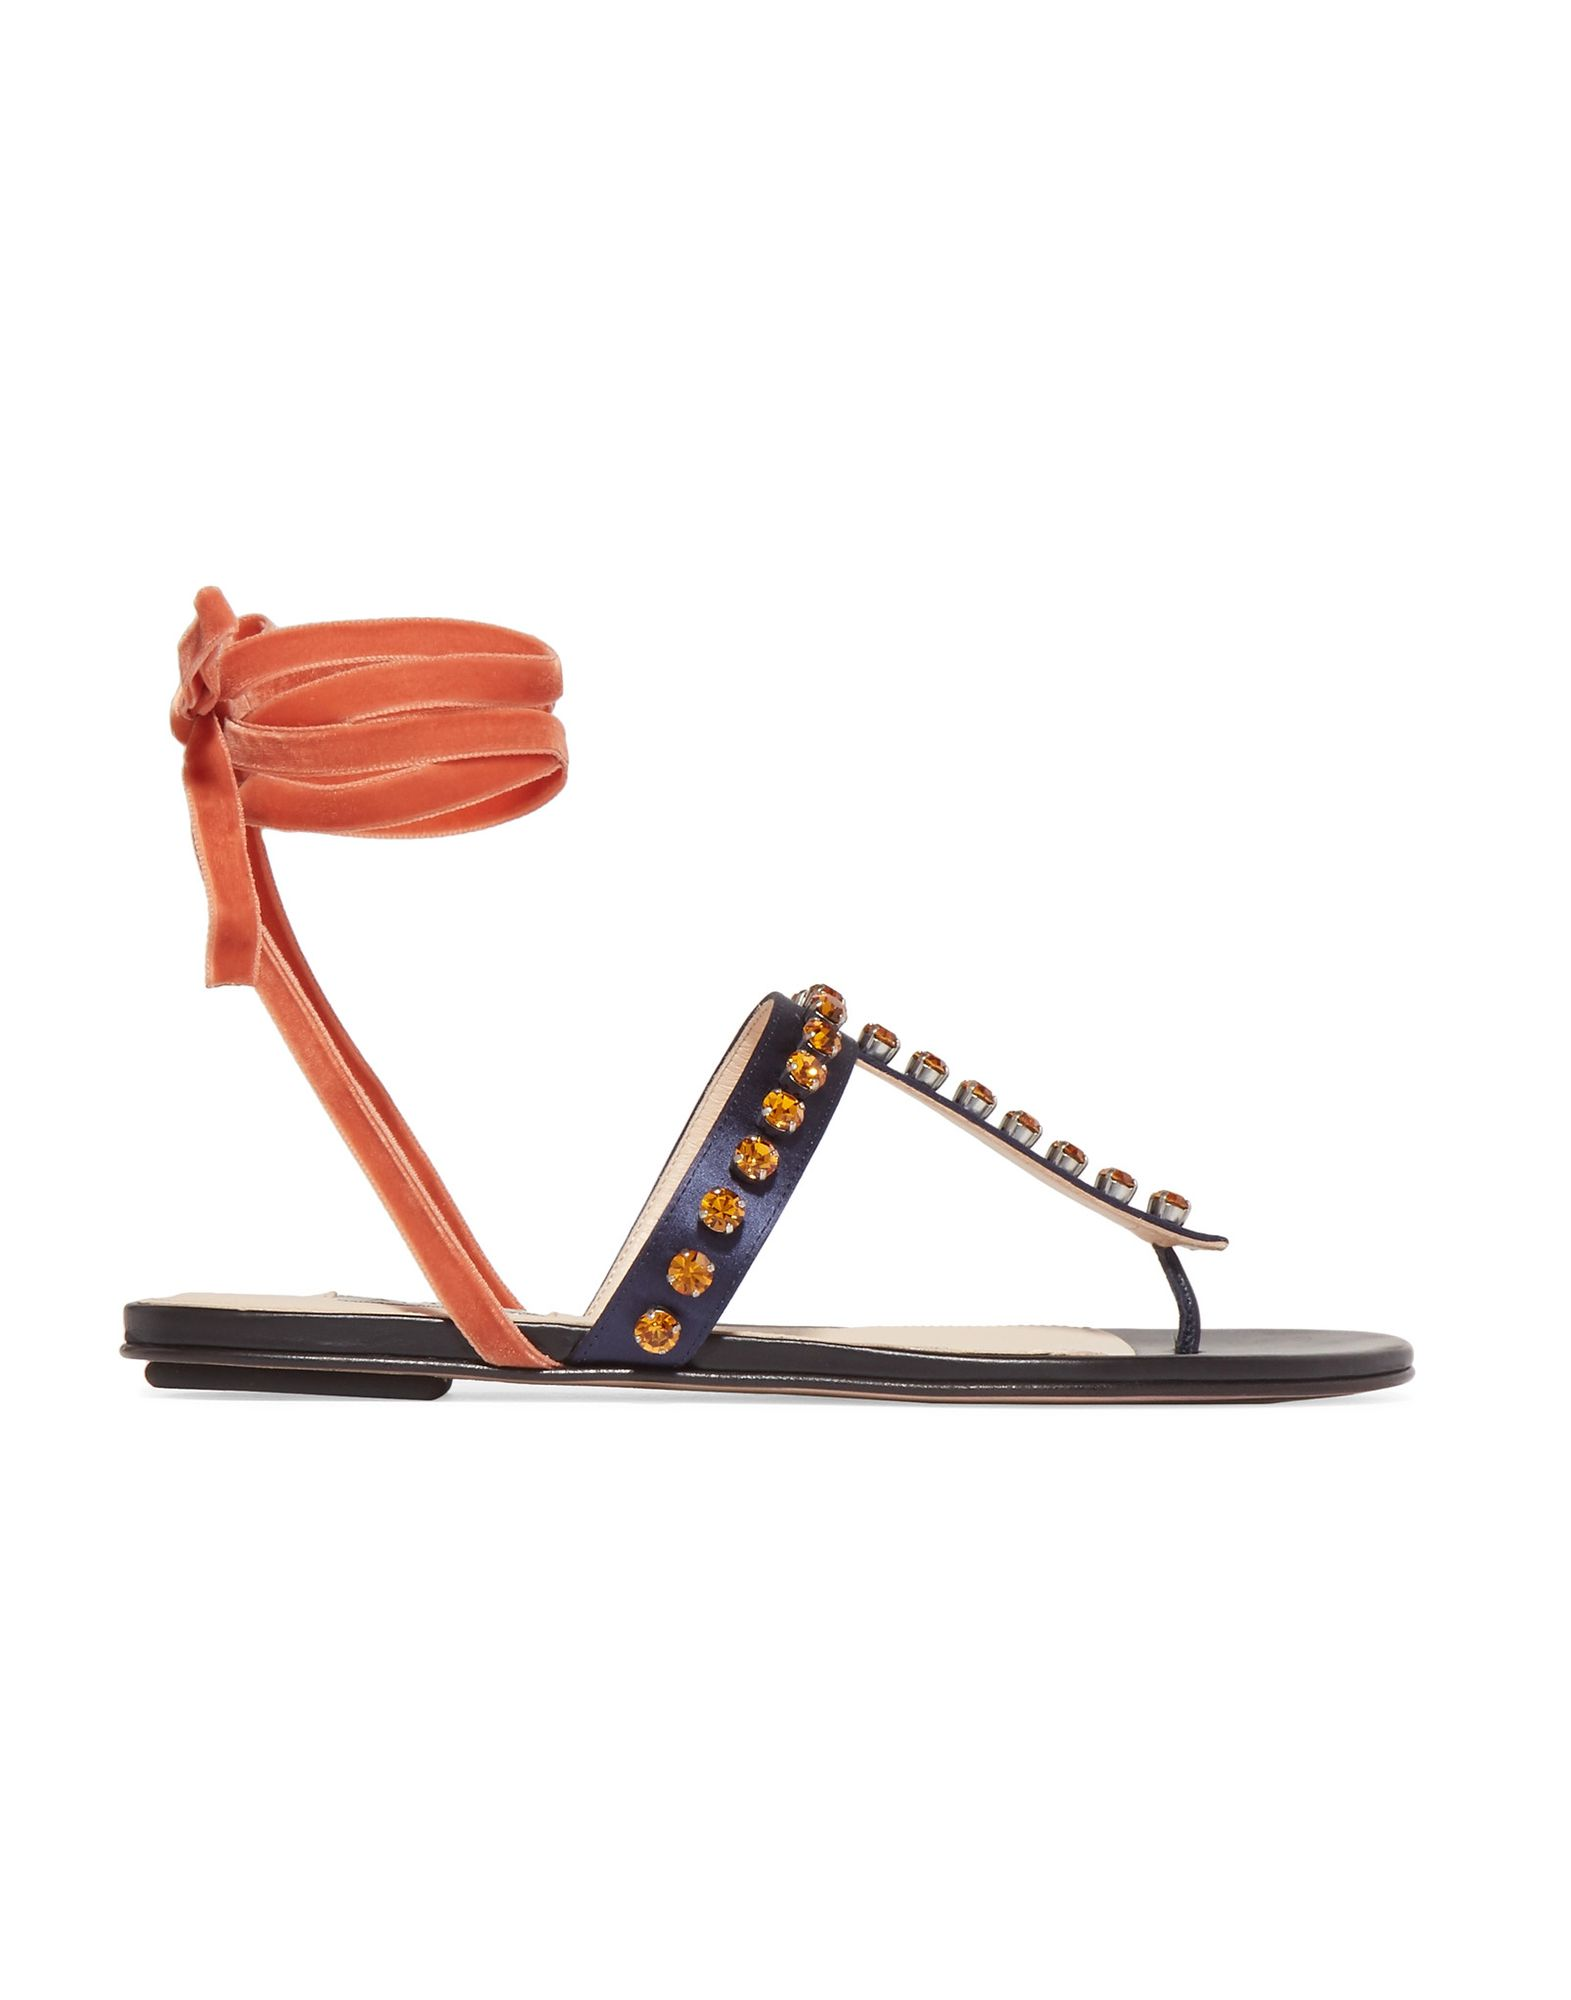 THE ATTICO Toe strap sandals. satin, rhinestones, solid color, wrapping straps closure, round toeline, flat, leather lining, leather sole, contains non-textile parts of animal origin. Textile fibers